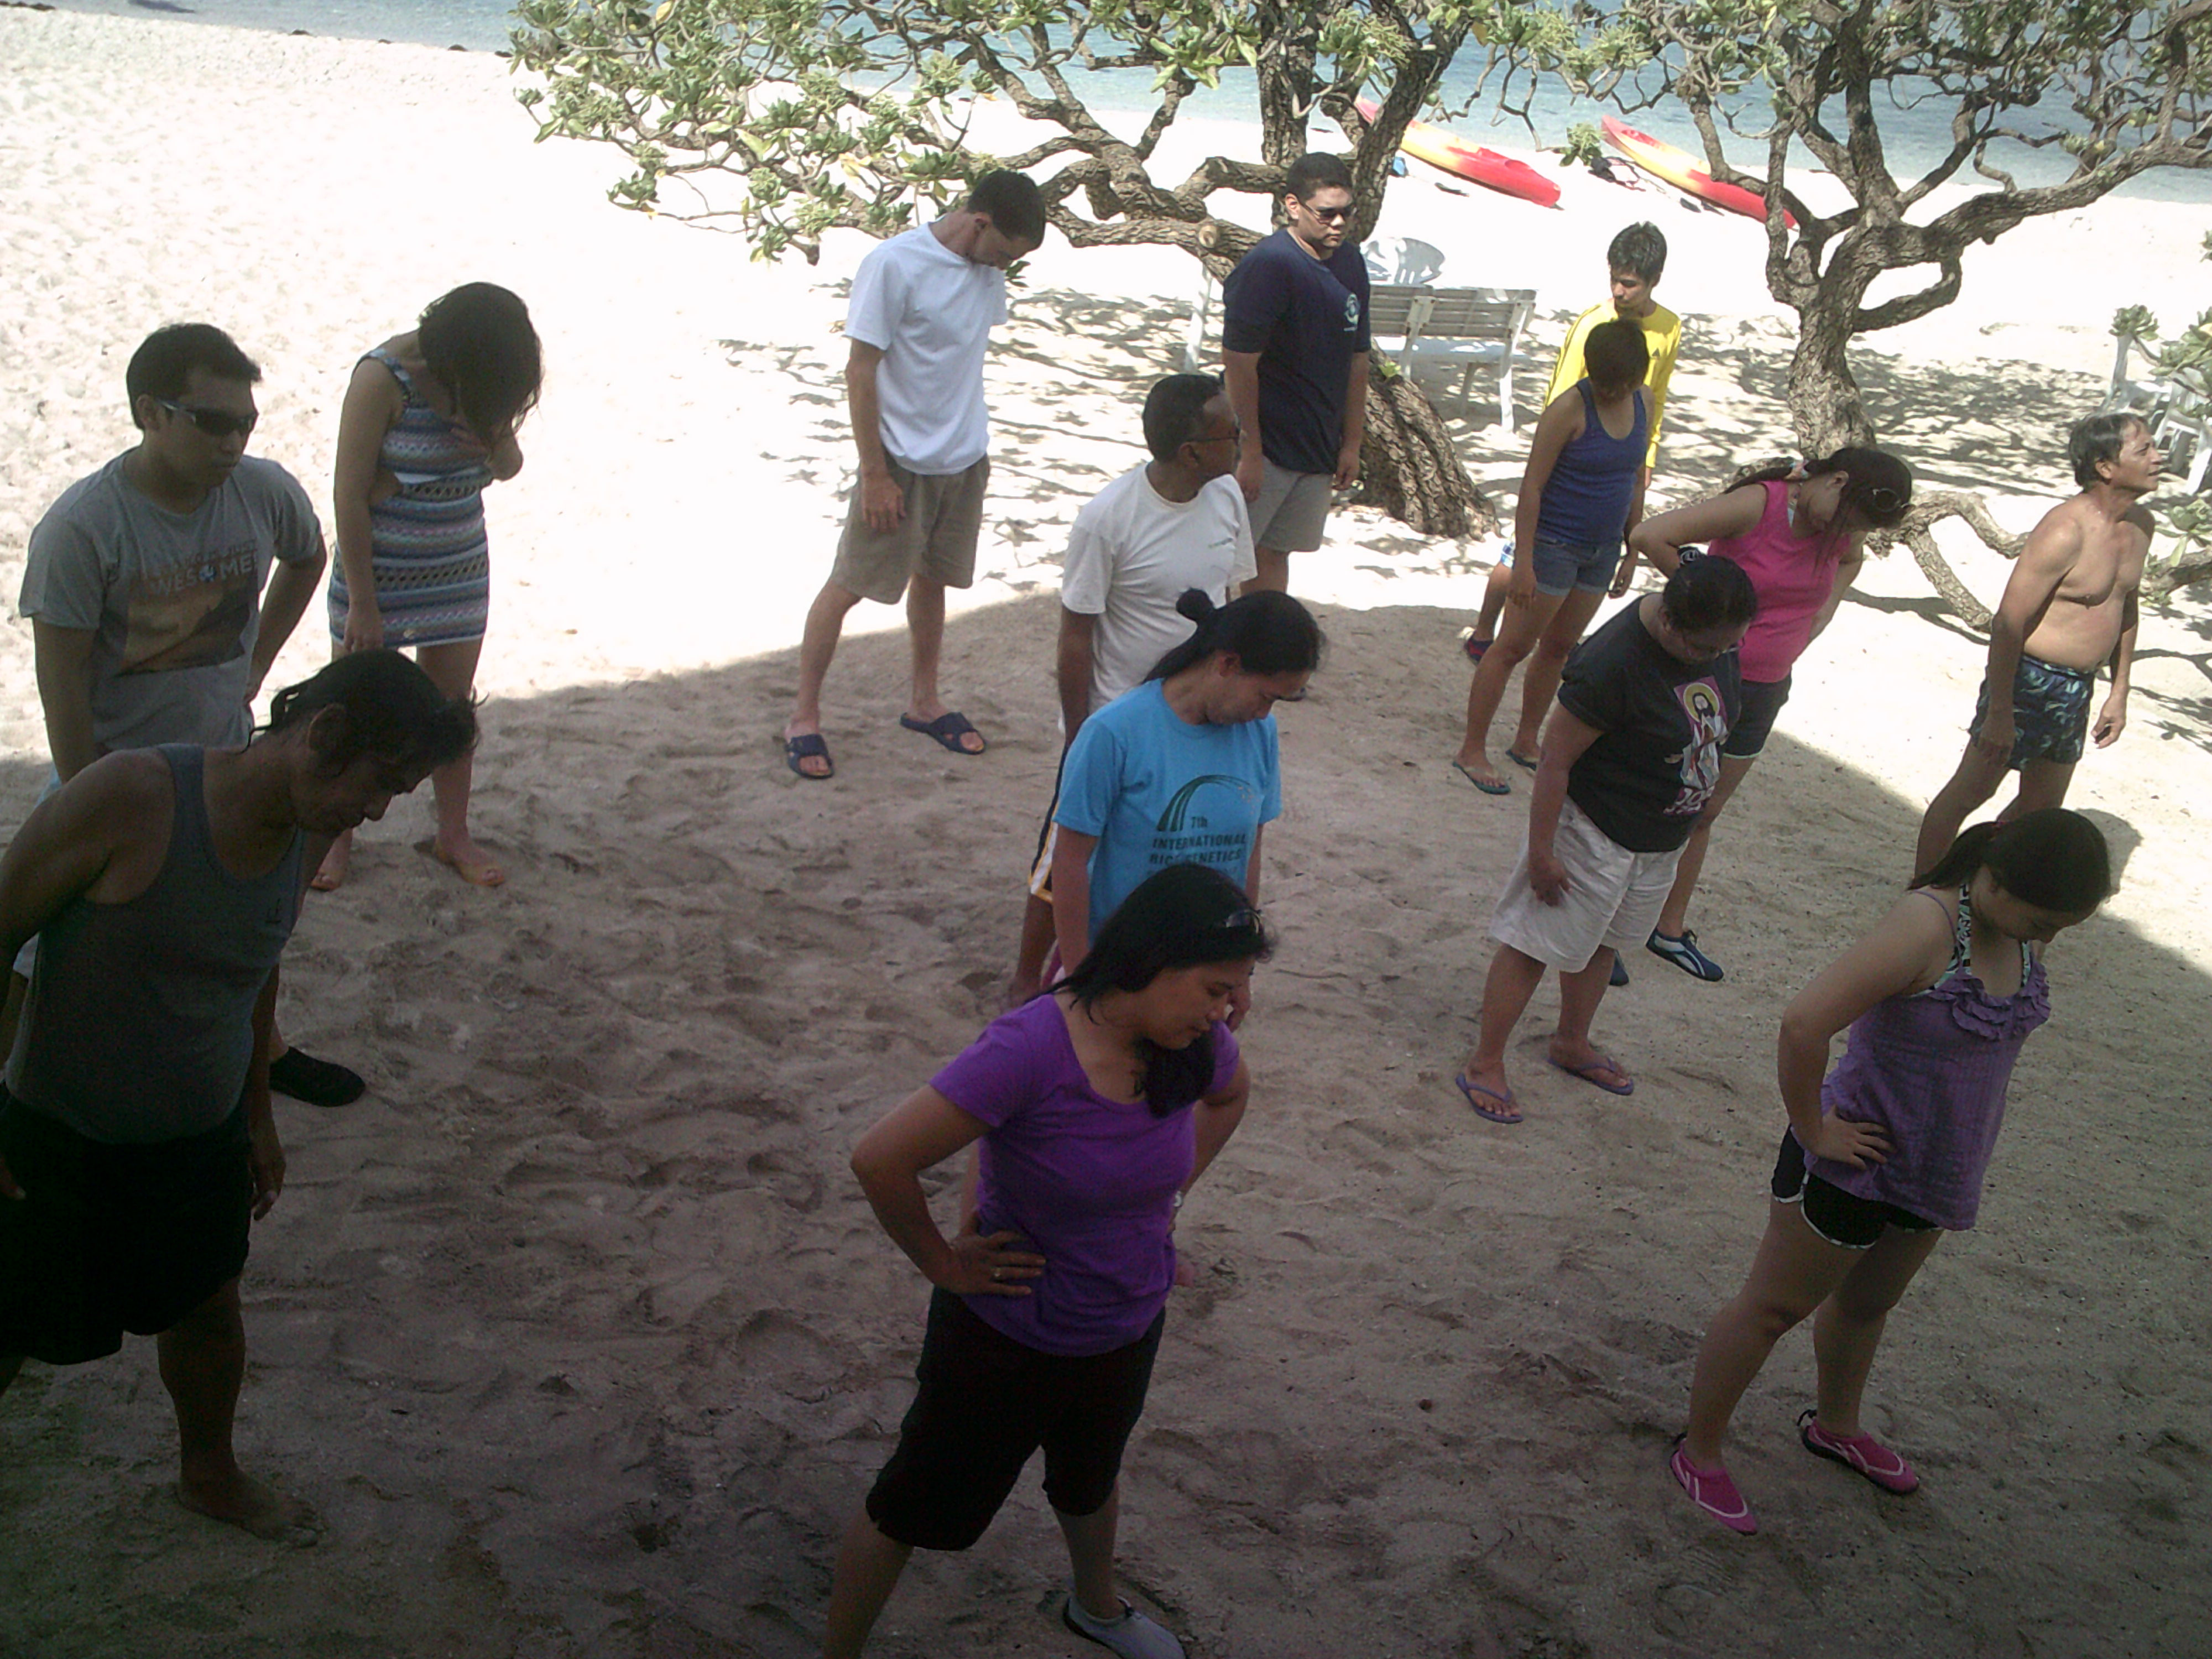 International_Rice_Research_Institute_irri_eagle_point_anilao_batangas_beach_resort_resorts_philippines_games_activities_company_outing_team_building_venue_venues